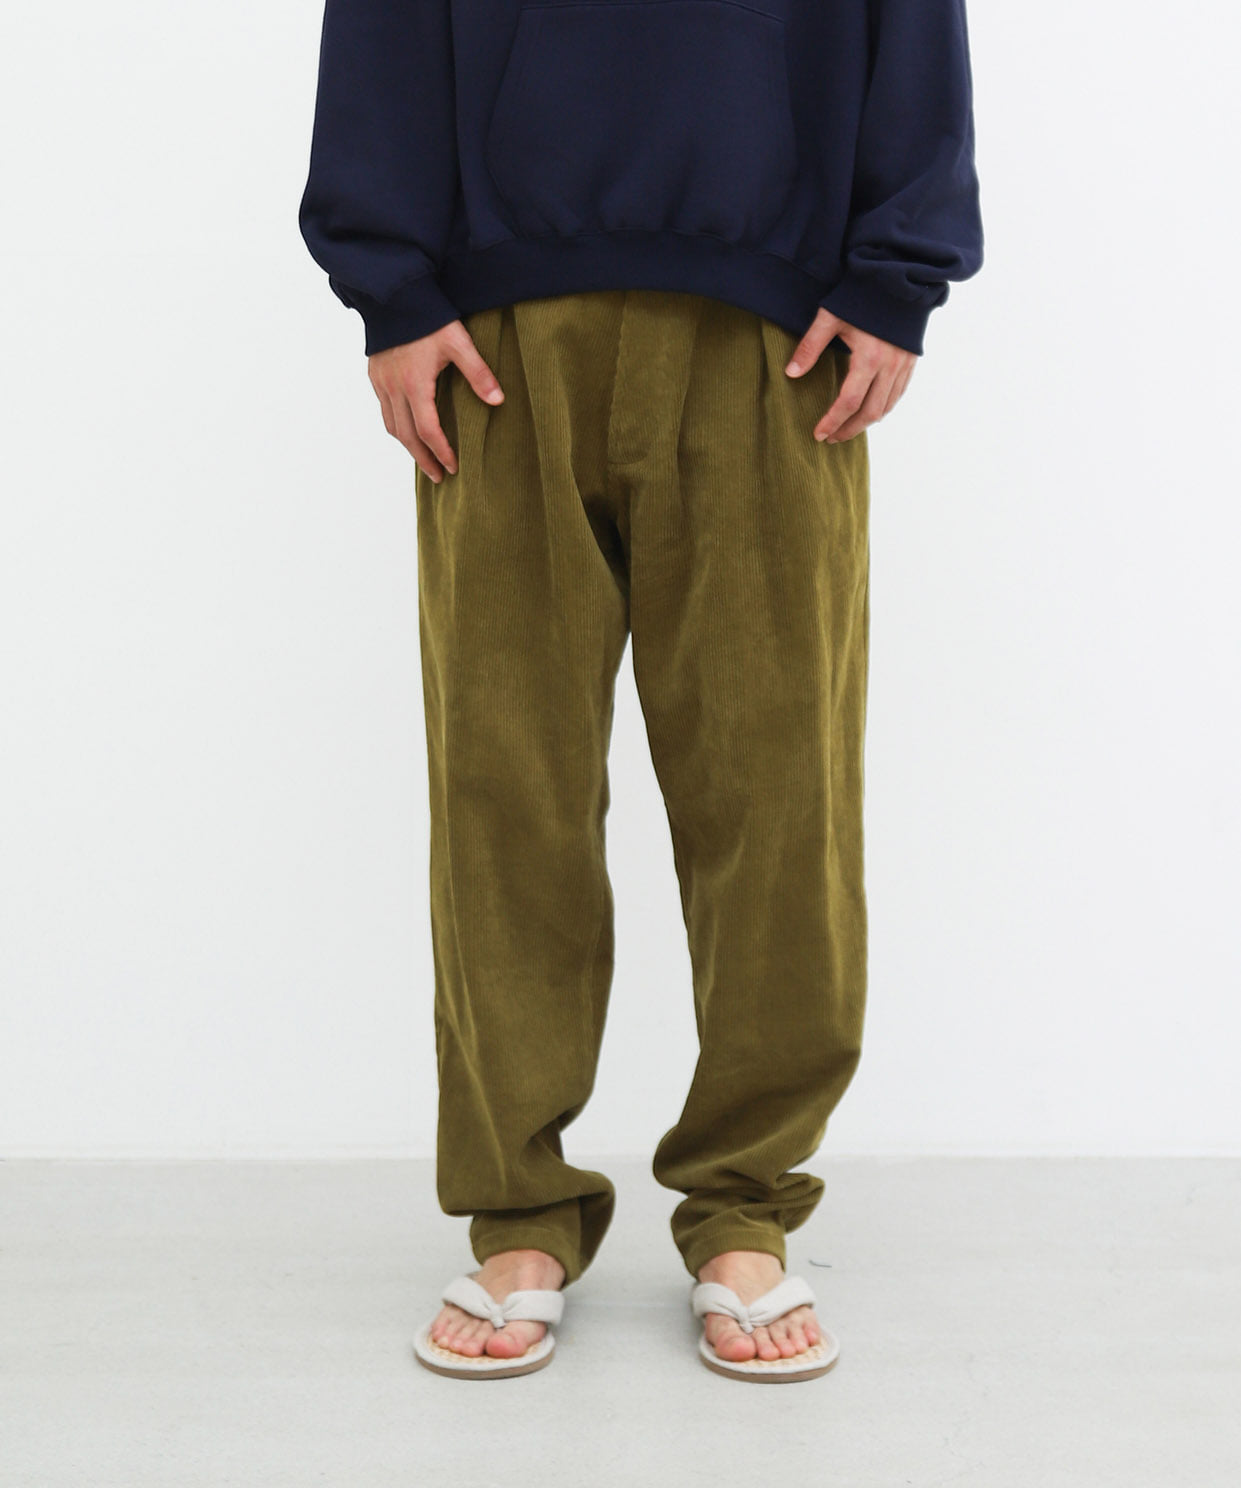 DROPPED TROUSER CORDUROY (SMOKED MUSTARD)